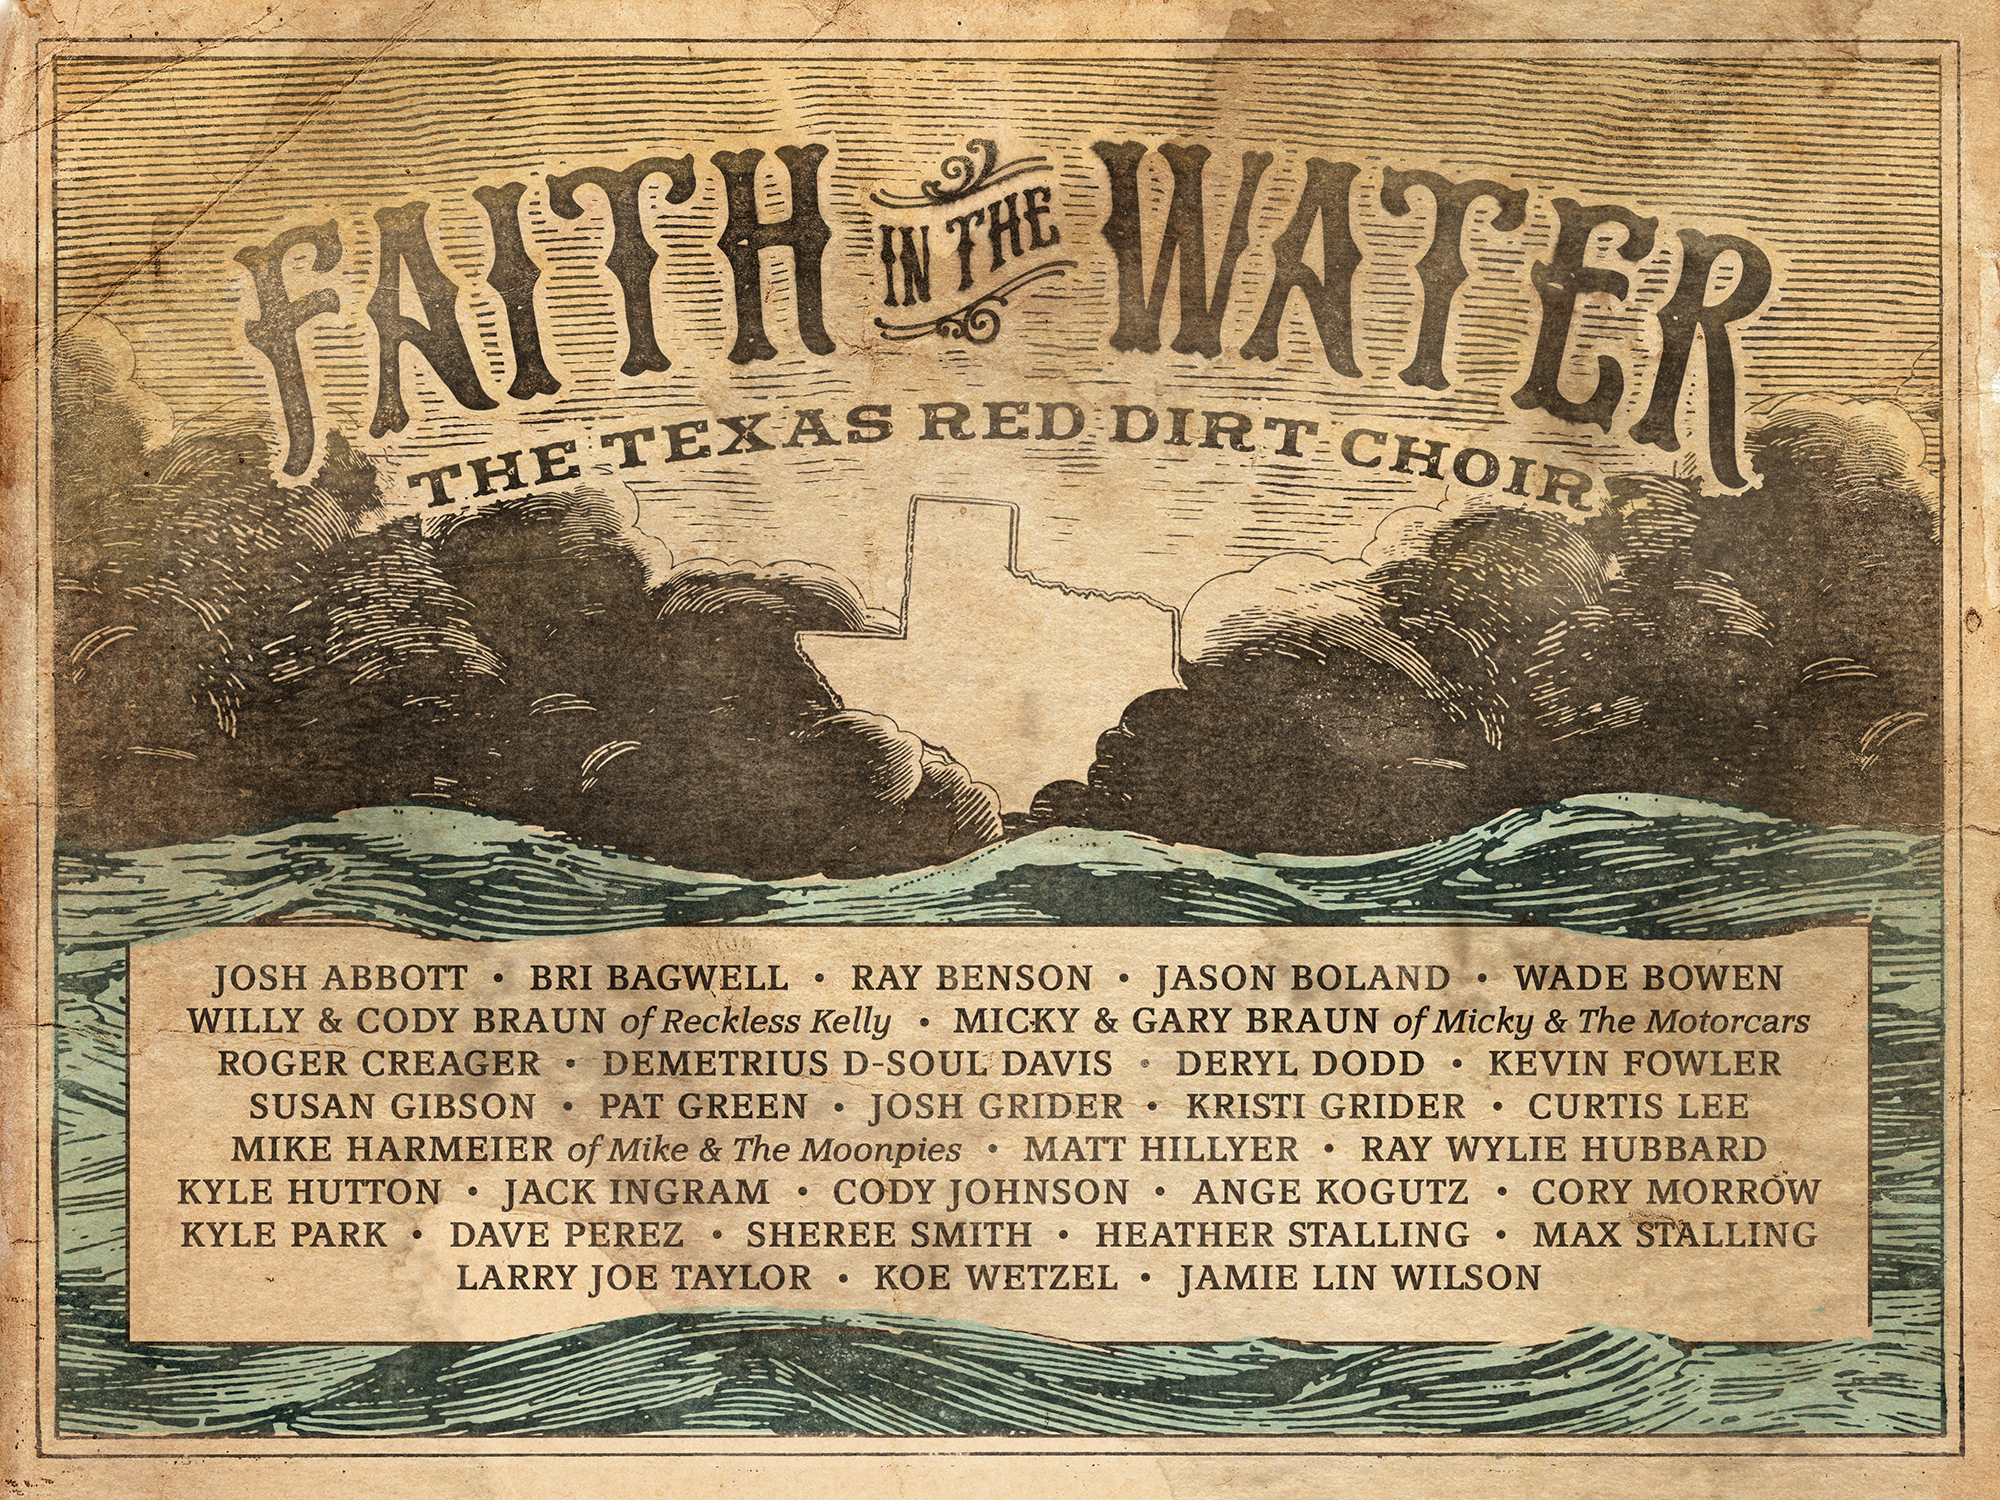 Cody Johnson, Other Artists to Release Faith in the Water Benefit Single On Nov. 3 for Hurricane Harvey Relief